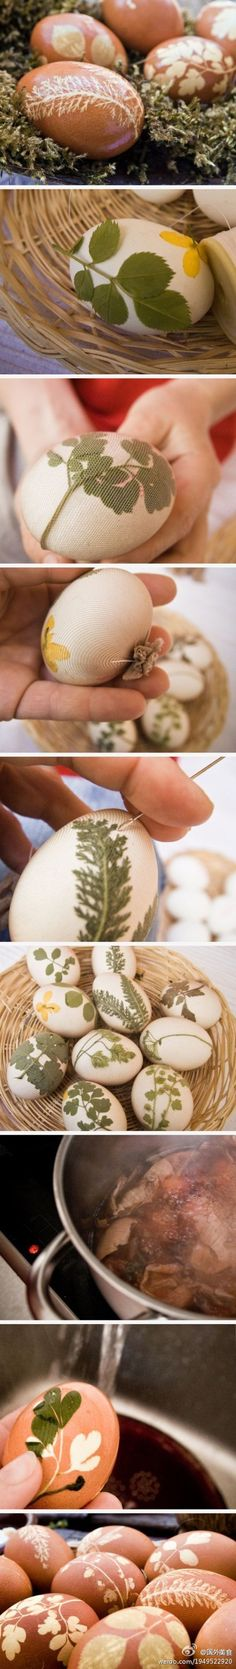 Love this for Easter. My mom made these several years ago. They turned out great!